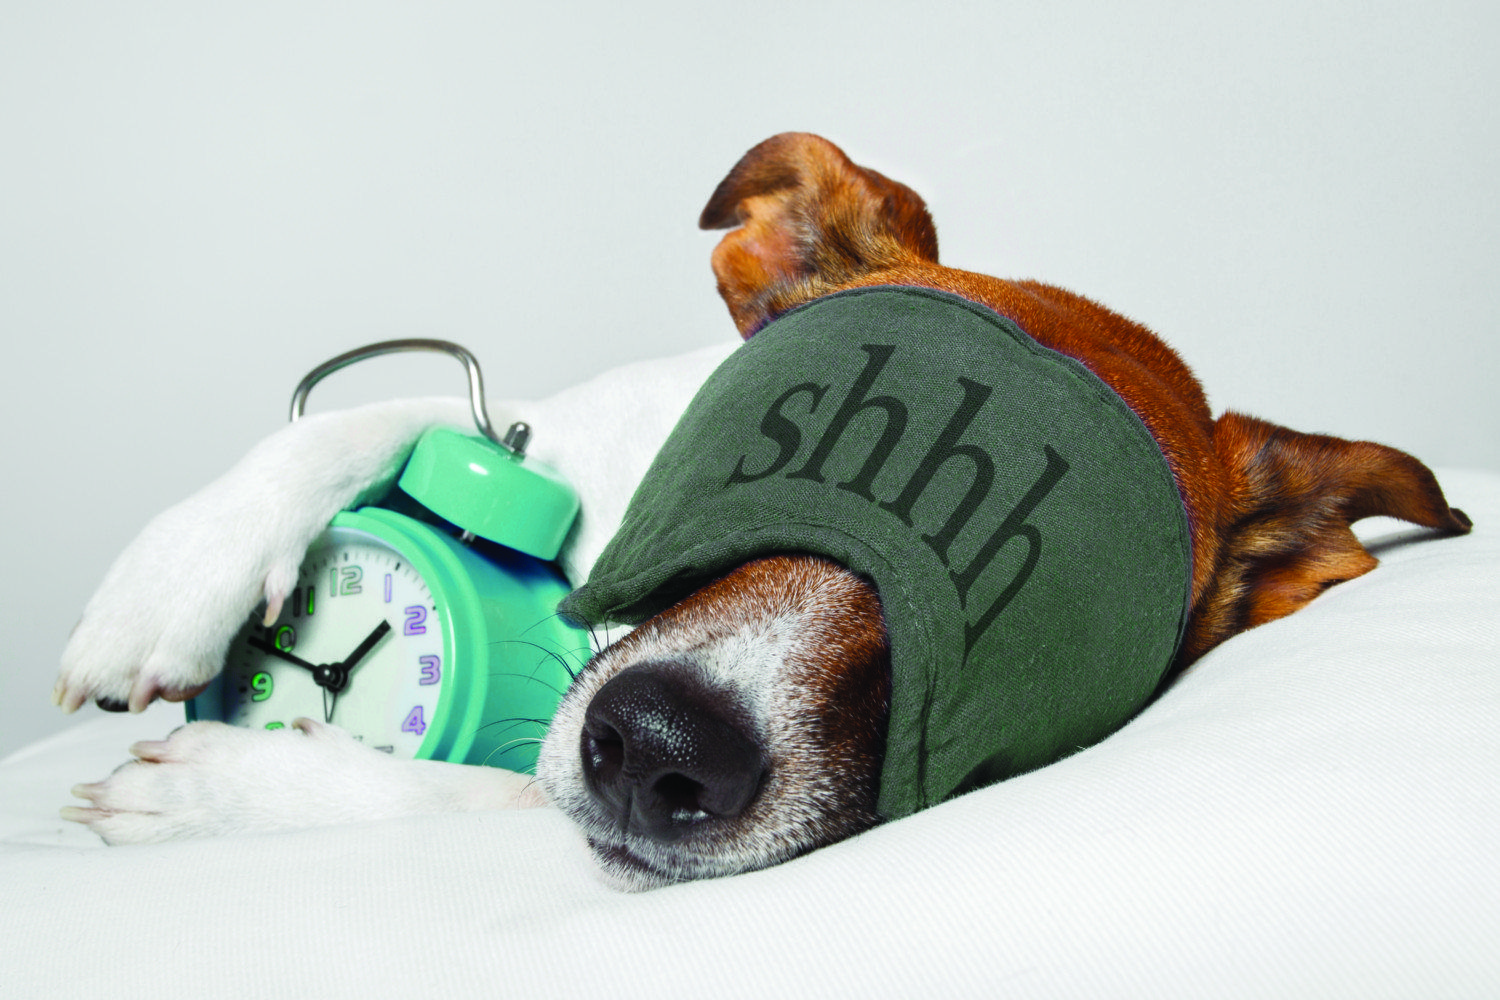 Pin by Holly Furney on Animalia Sleeping dogs, How to